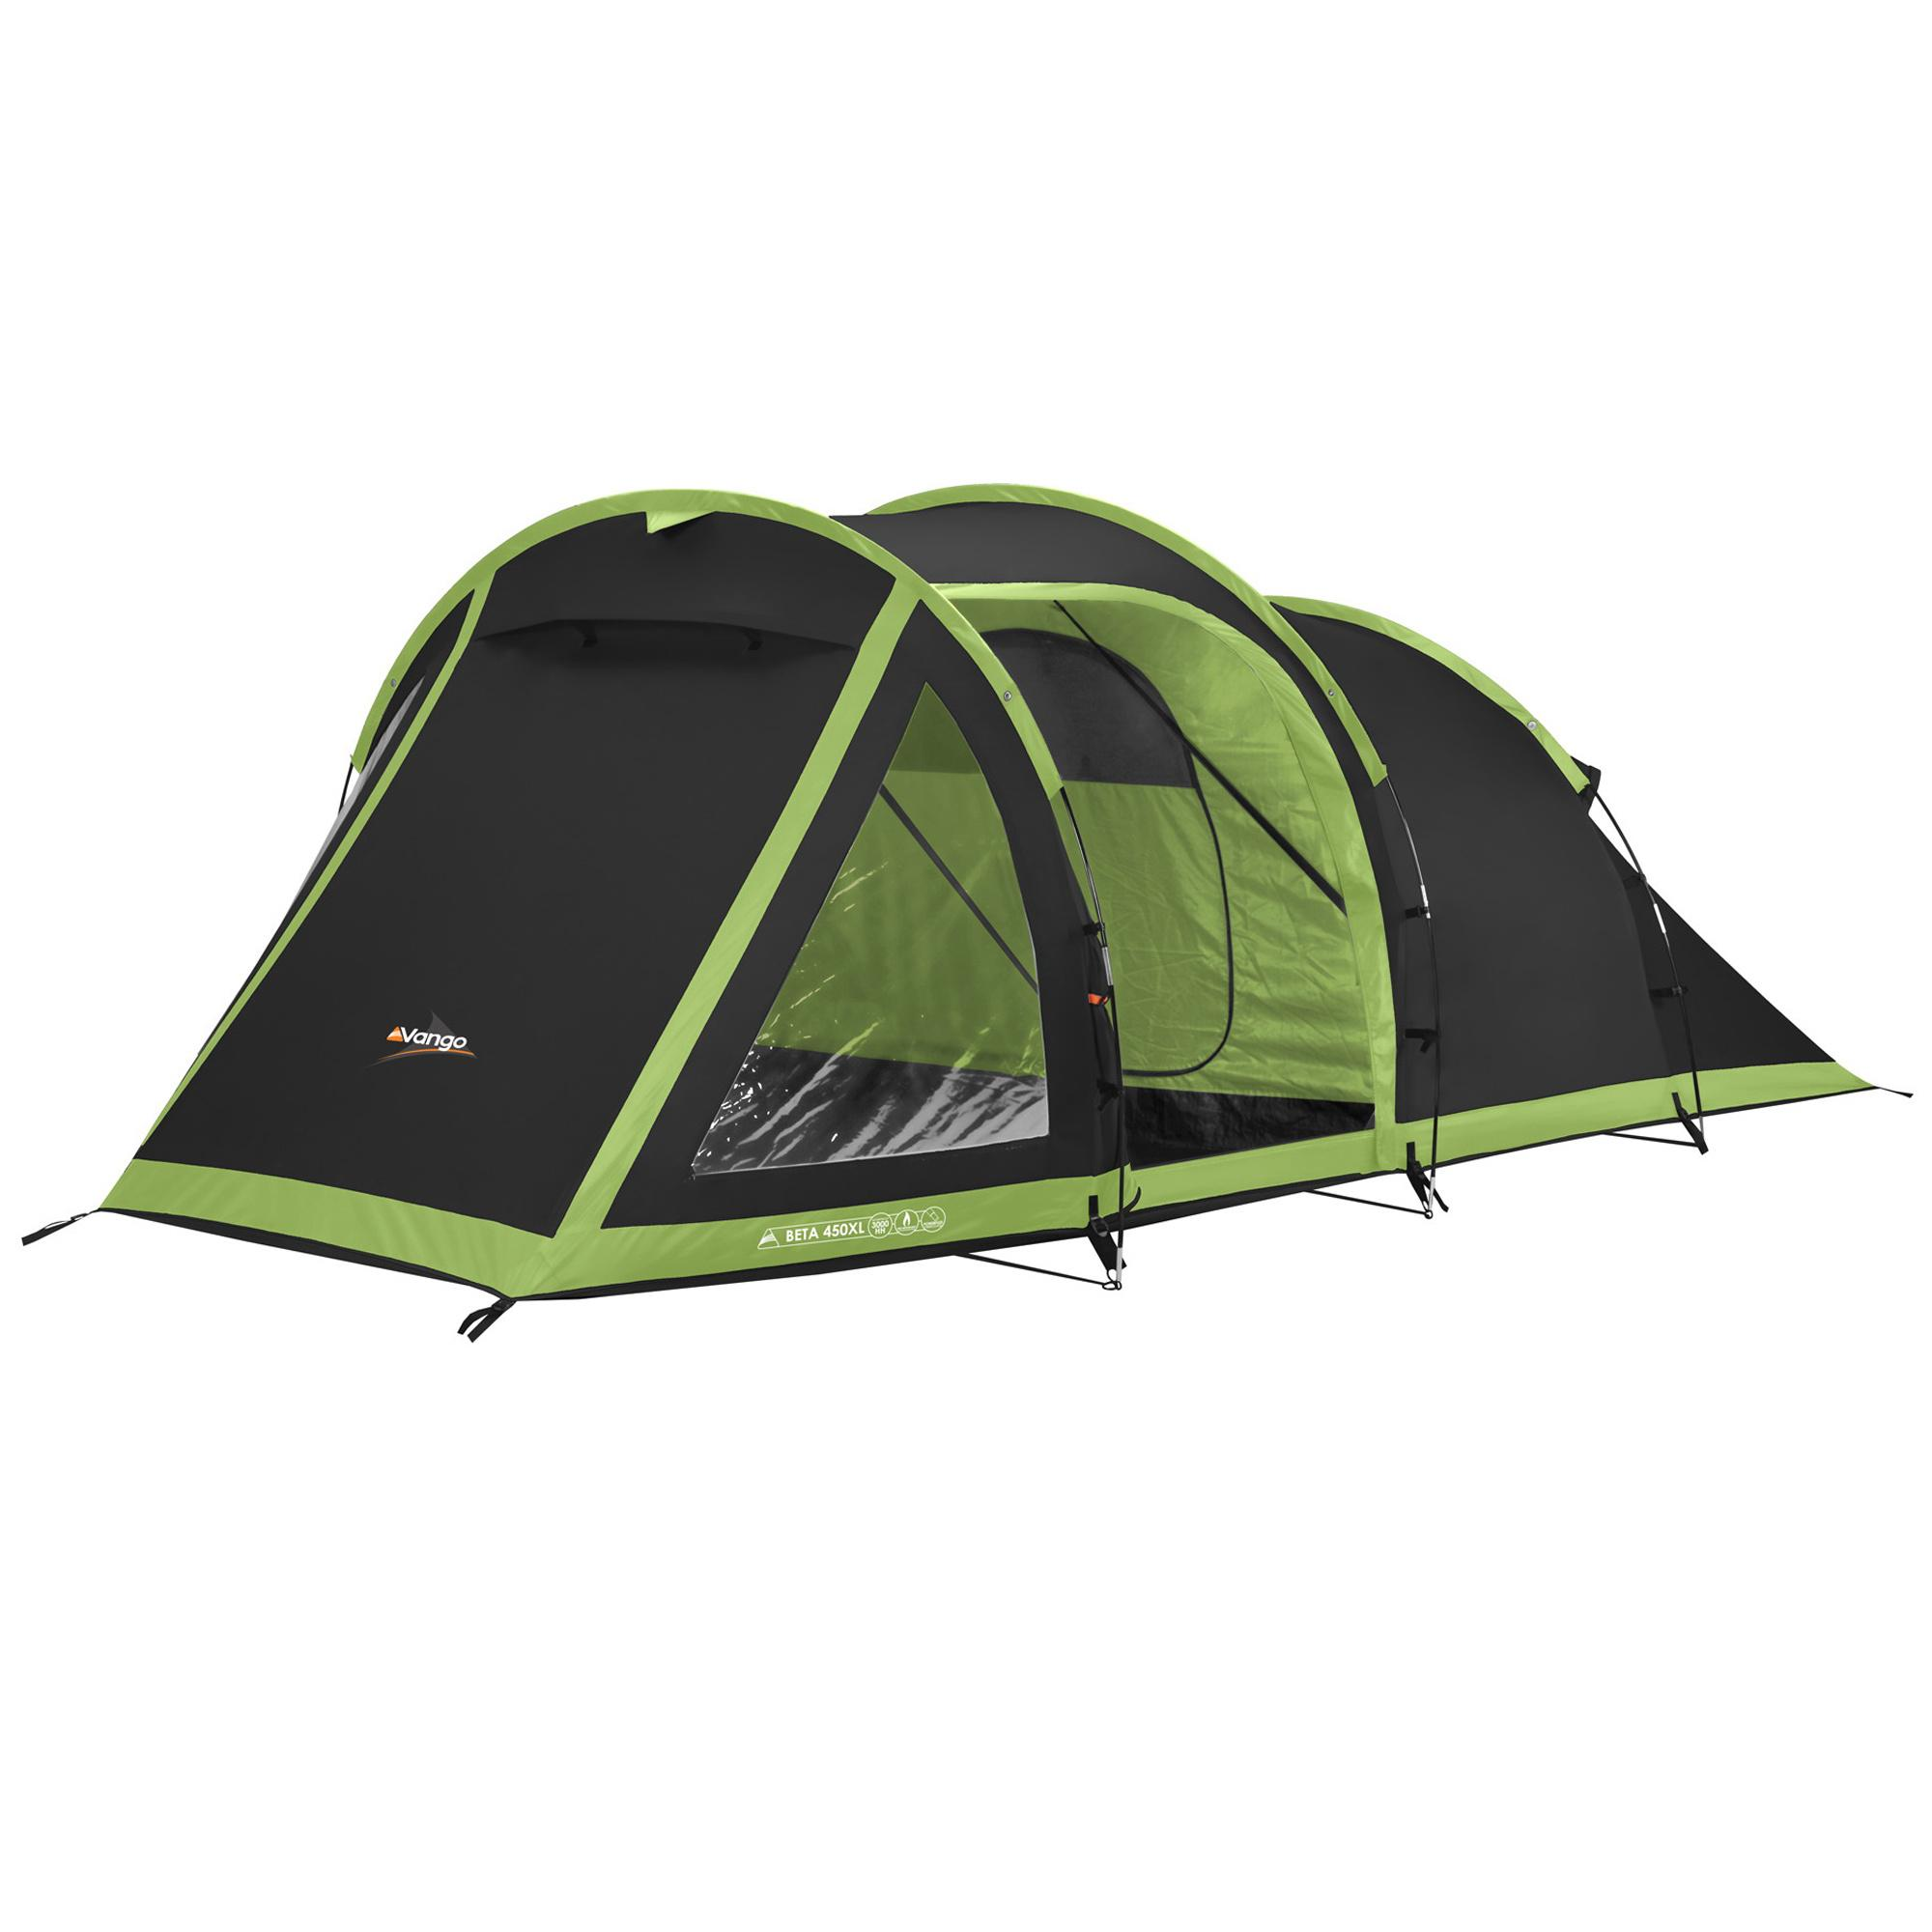 VANGO Beta 450XL 4 Man Tunnel Tent  sc 1 st  Millets & VANGO Beta 450XL 4 Man Tunnel Tent | Millets